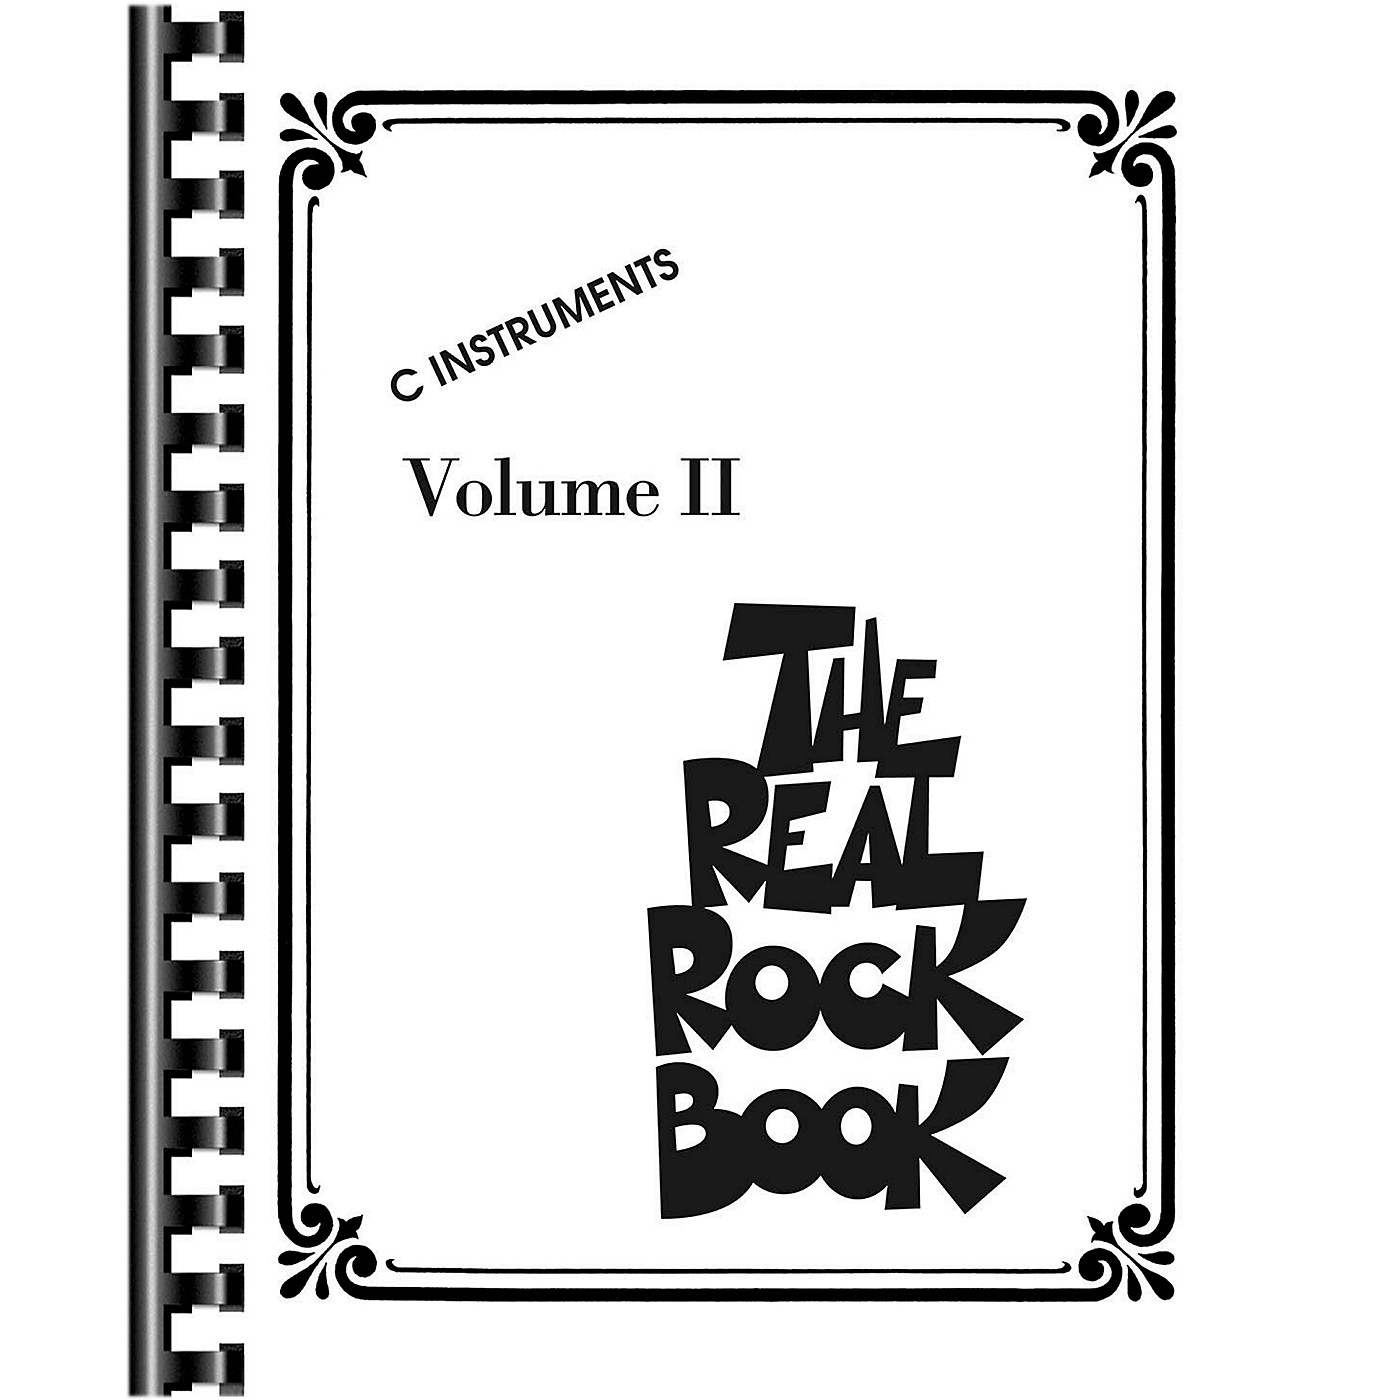 Hal Leonard The Real Rock Book Volume 2 Fake Book for C Instruments thumbnail